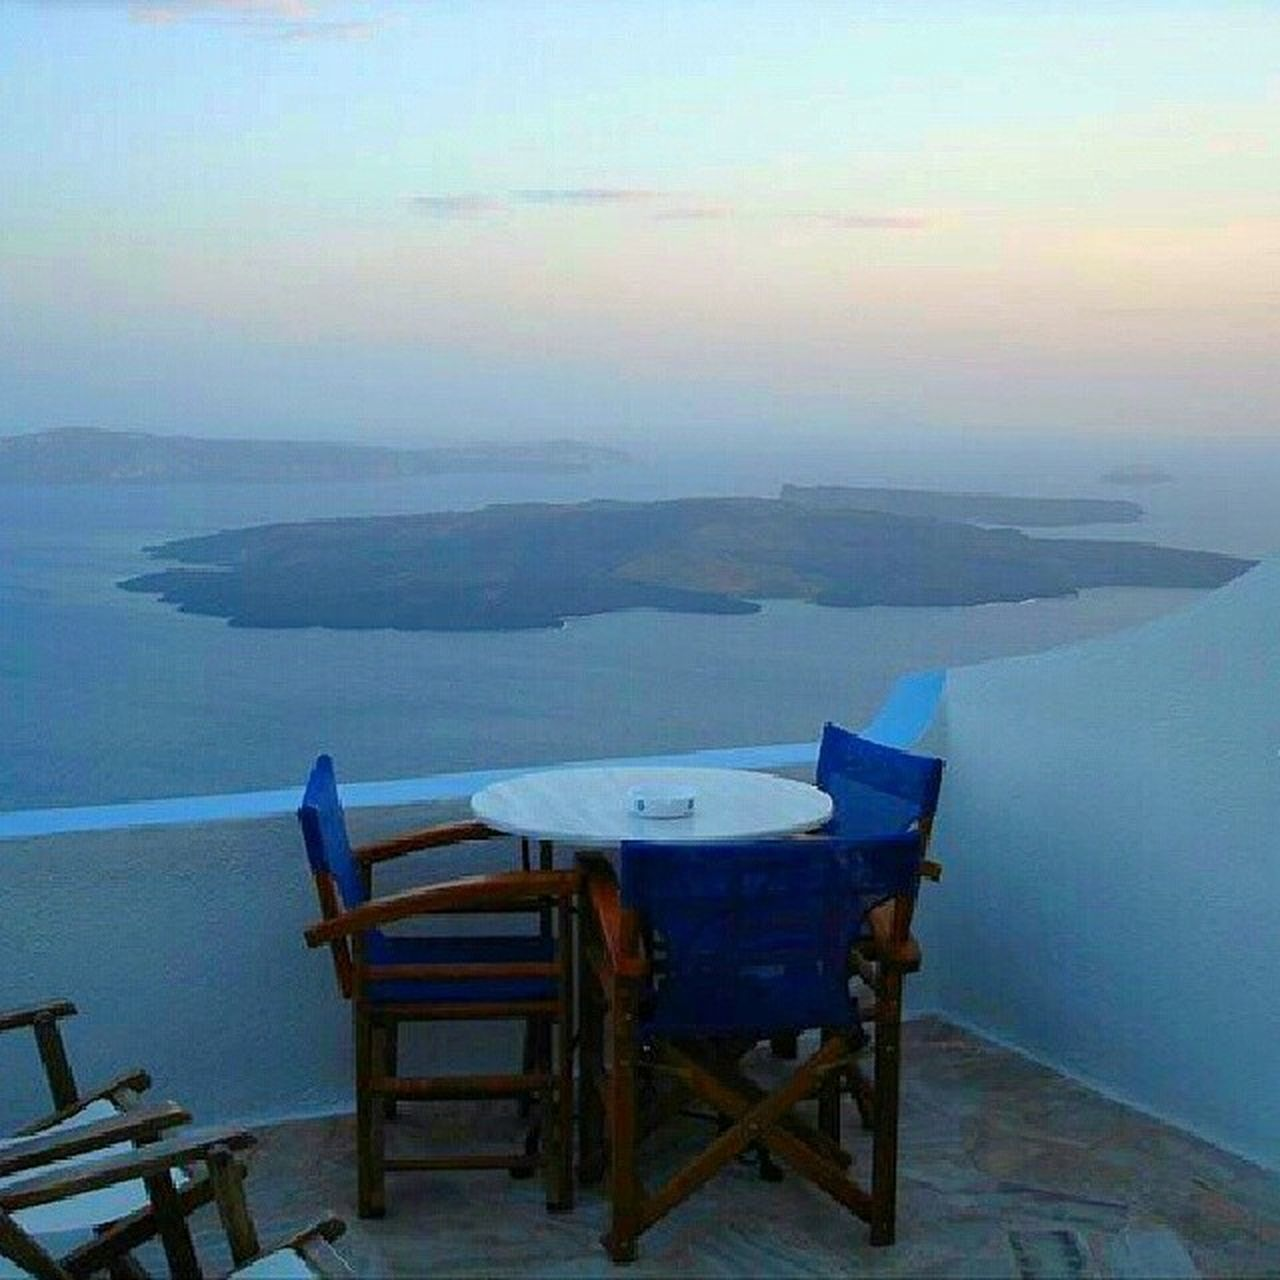 chair, table, sky, sea, scenics, landscape, nature, no people, tranquility, day, beauty in nature, outdoors, horizon over water, mountain, water